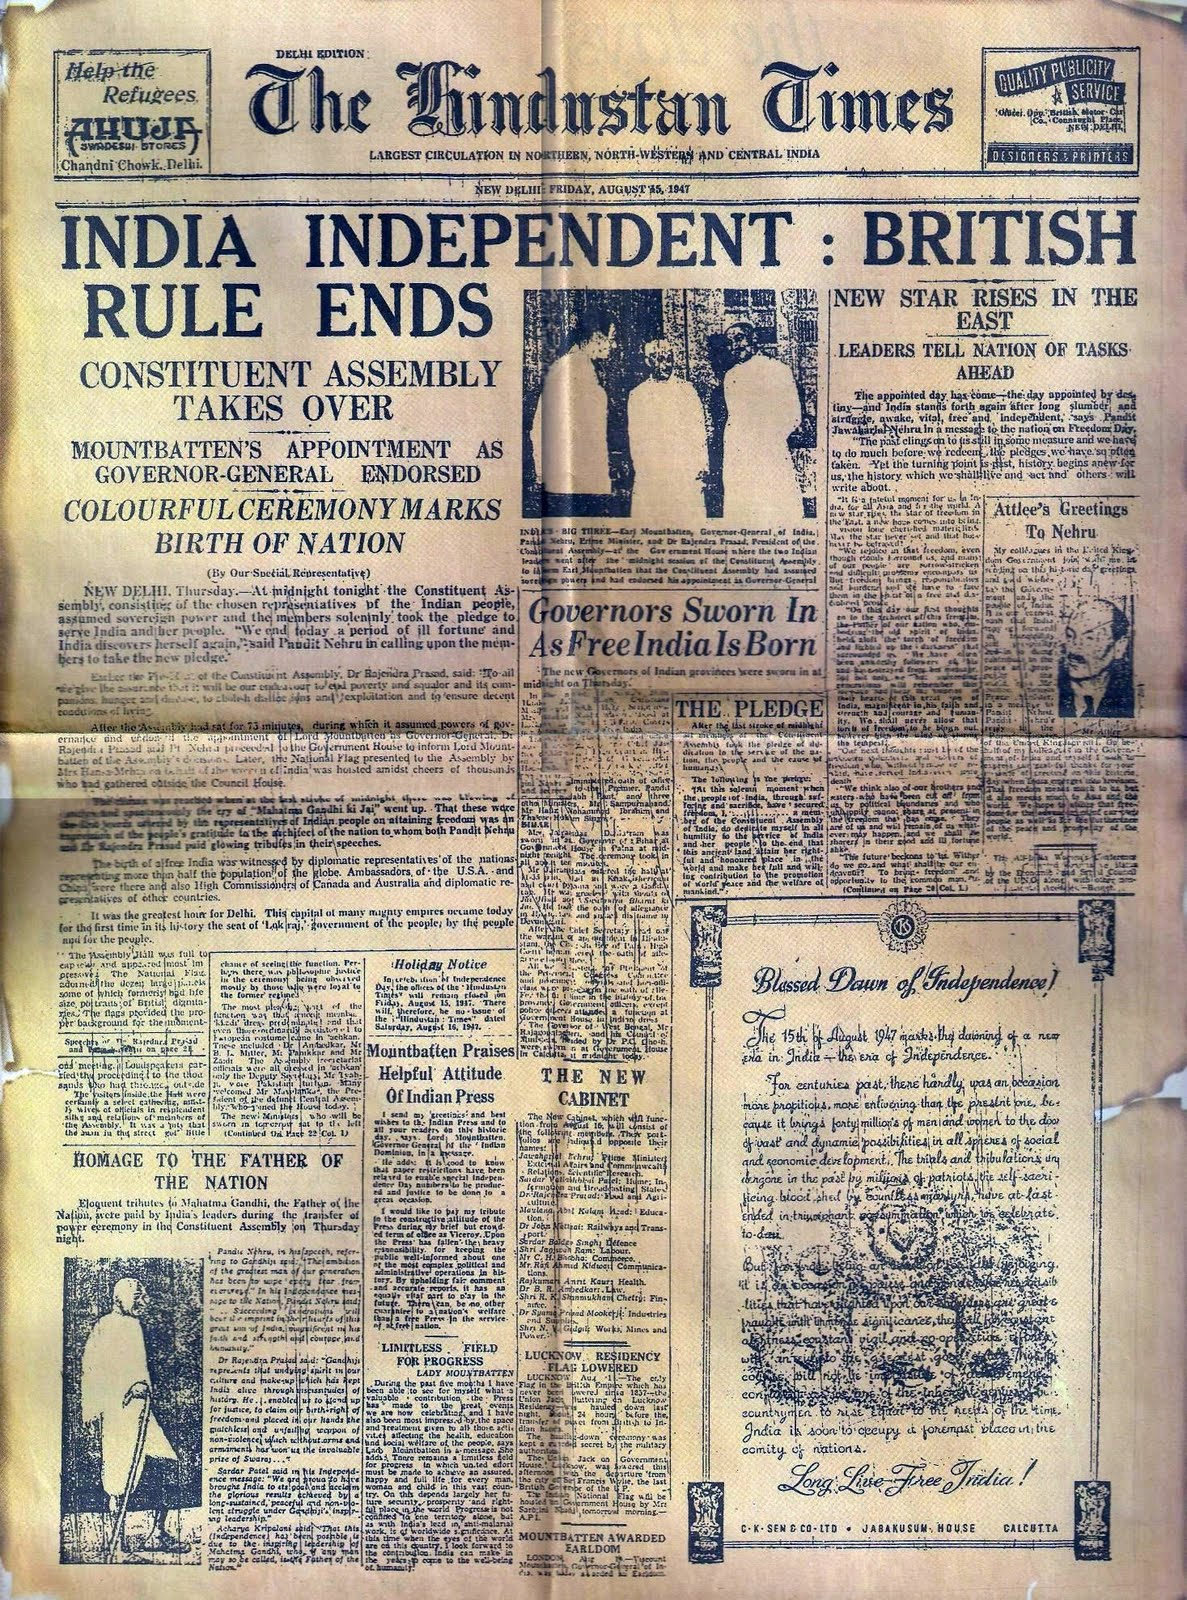 british raj thesis The british raj and the india's caste system essay the british raj and the india's the lion and the tiger: the rise and fall of the british raj.